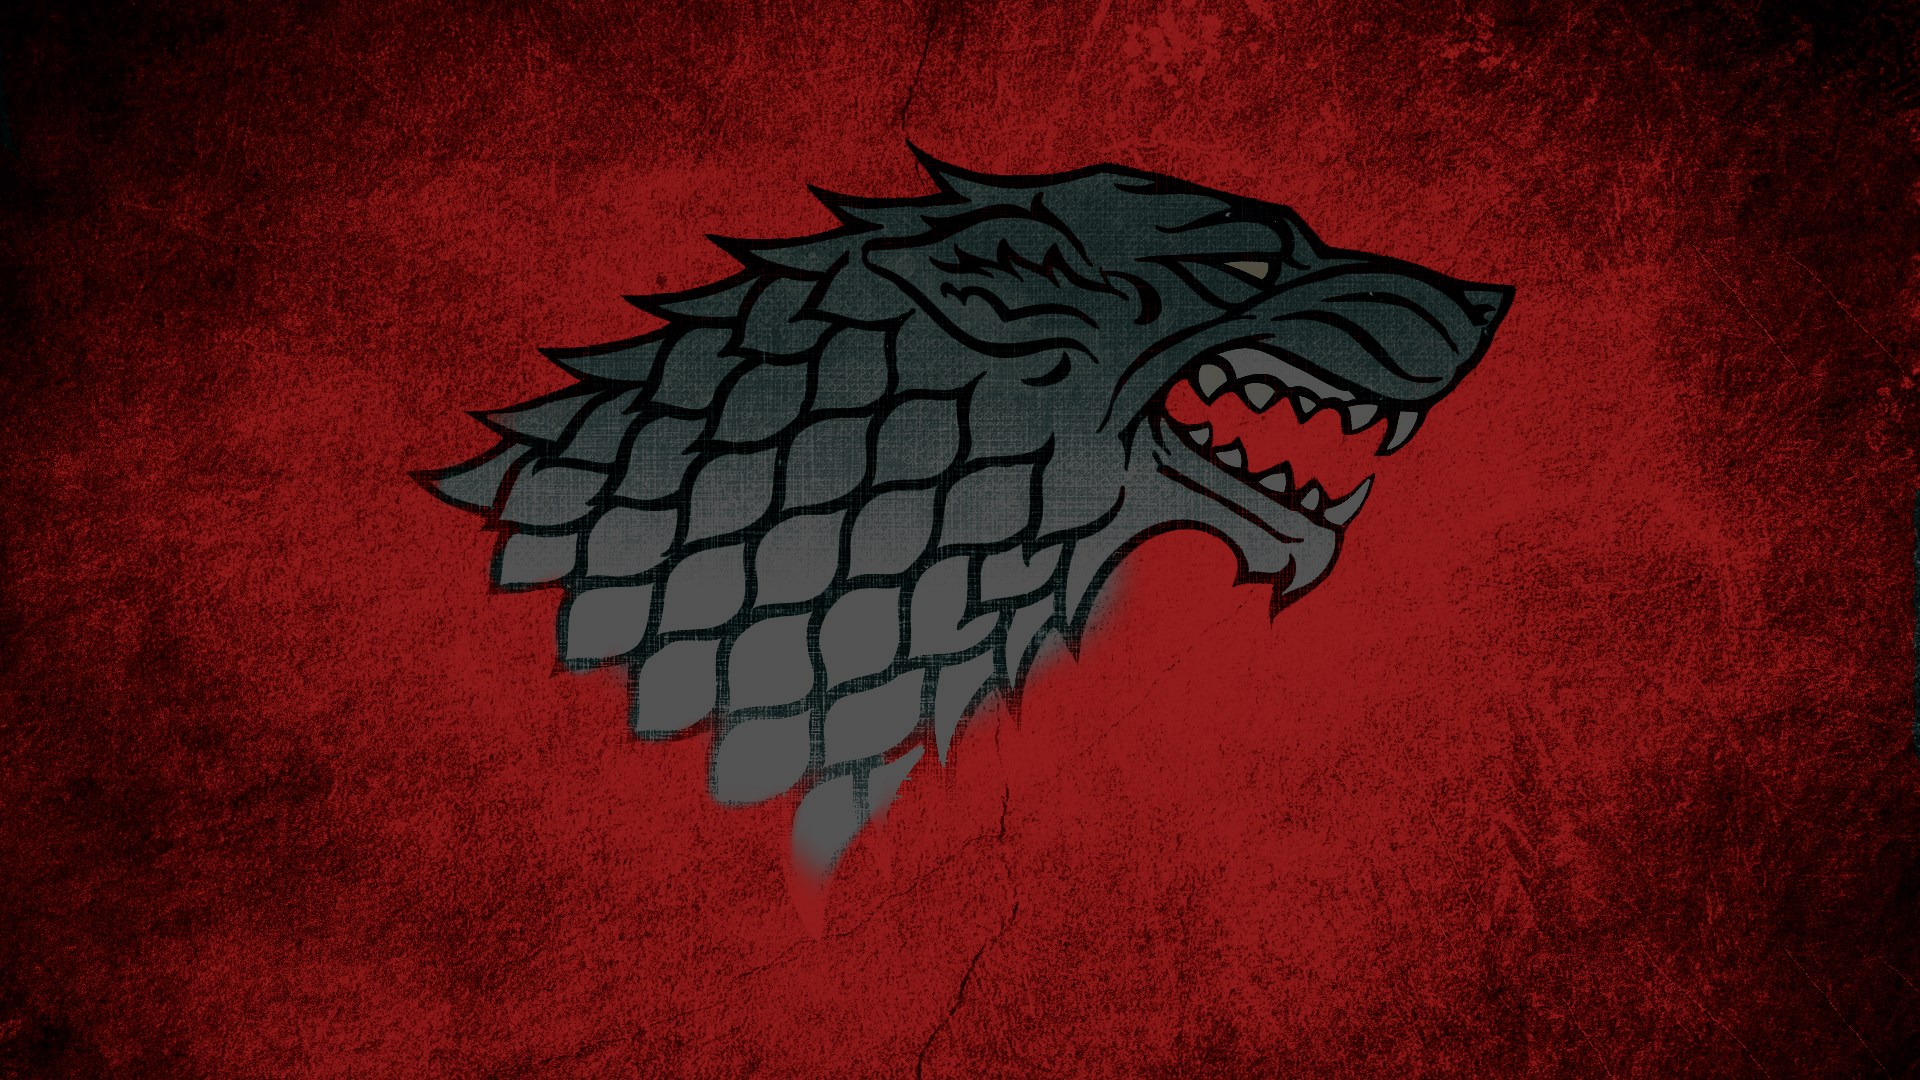 game-of-thrones-1080p-high-quality-wallpaper-wp3801087